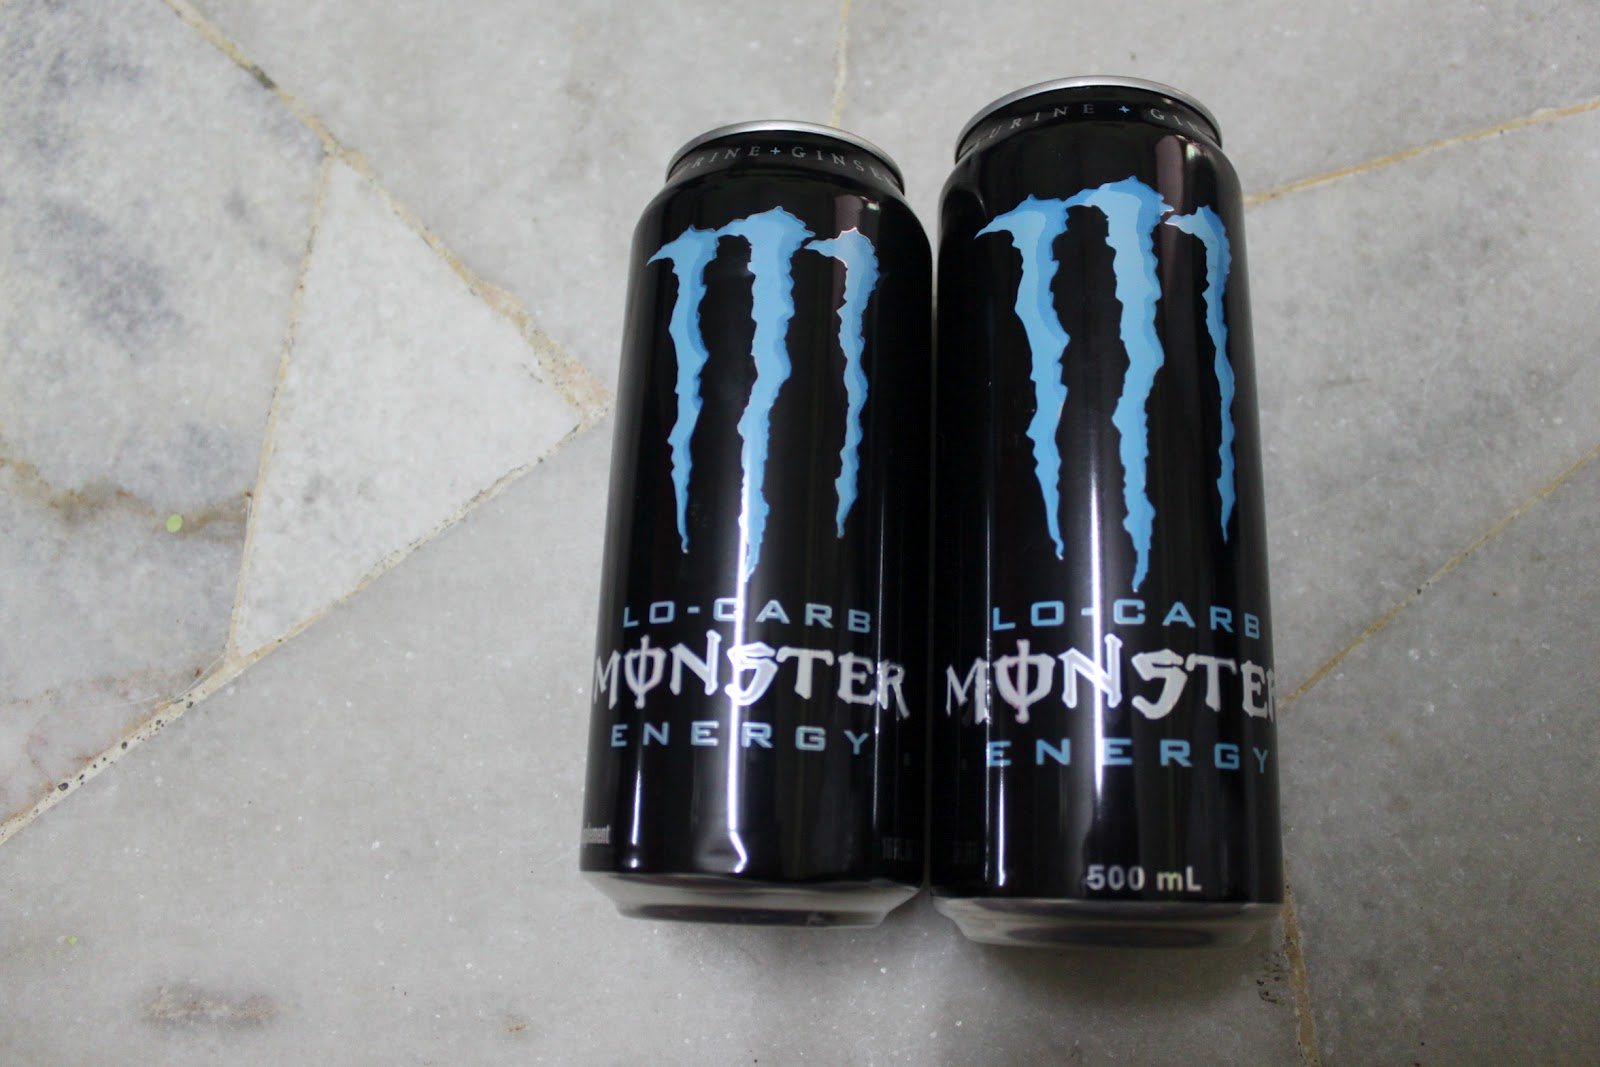 ENERGYCOM: NEW ROCKSTAR AND MONSTER ENERGY DRINK FOR SALE